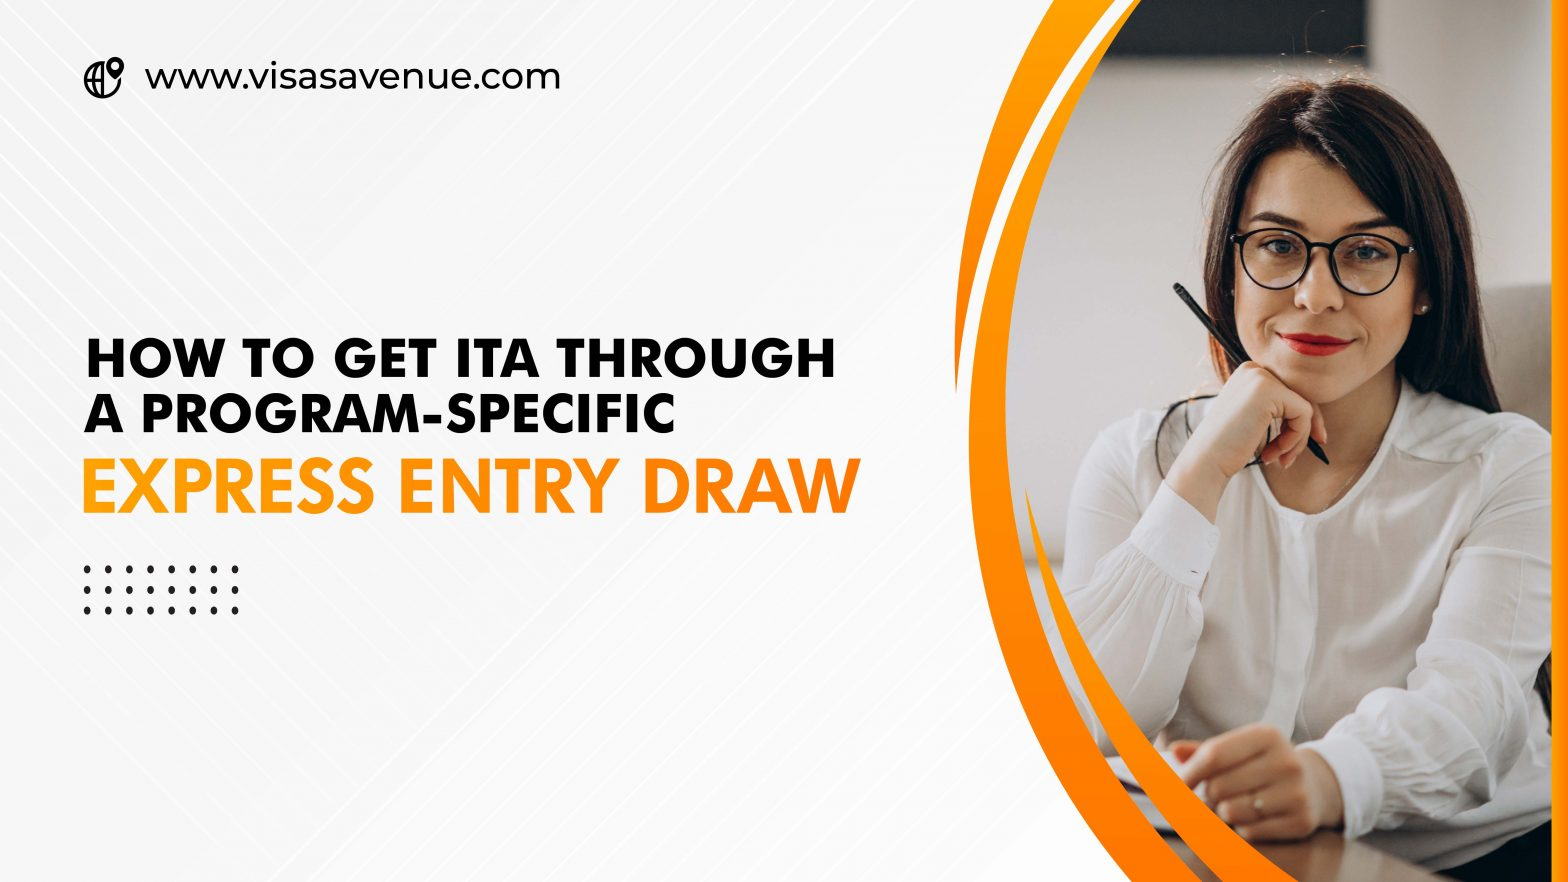 How to get ITA through a Program-Specific Express Entry Draw